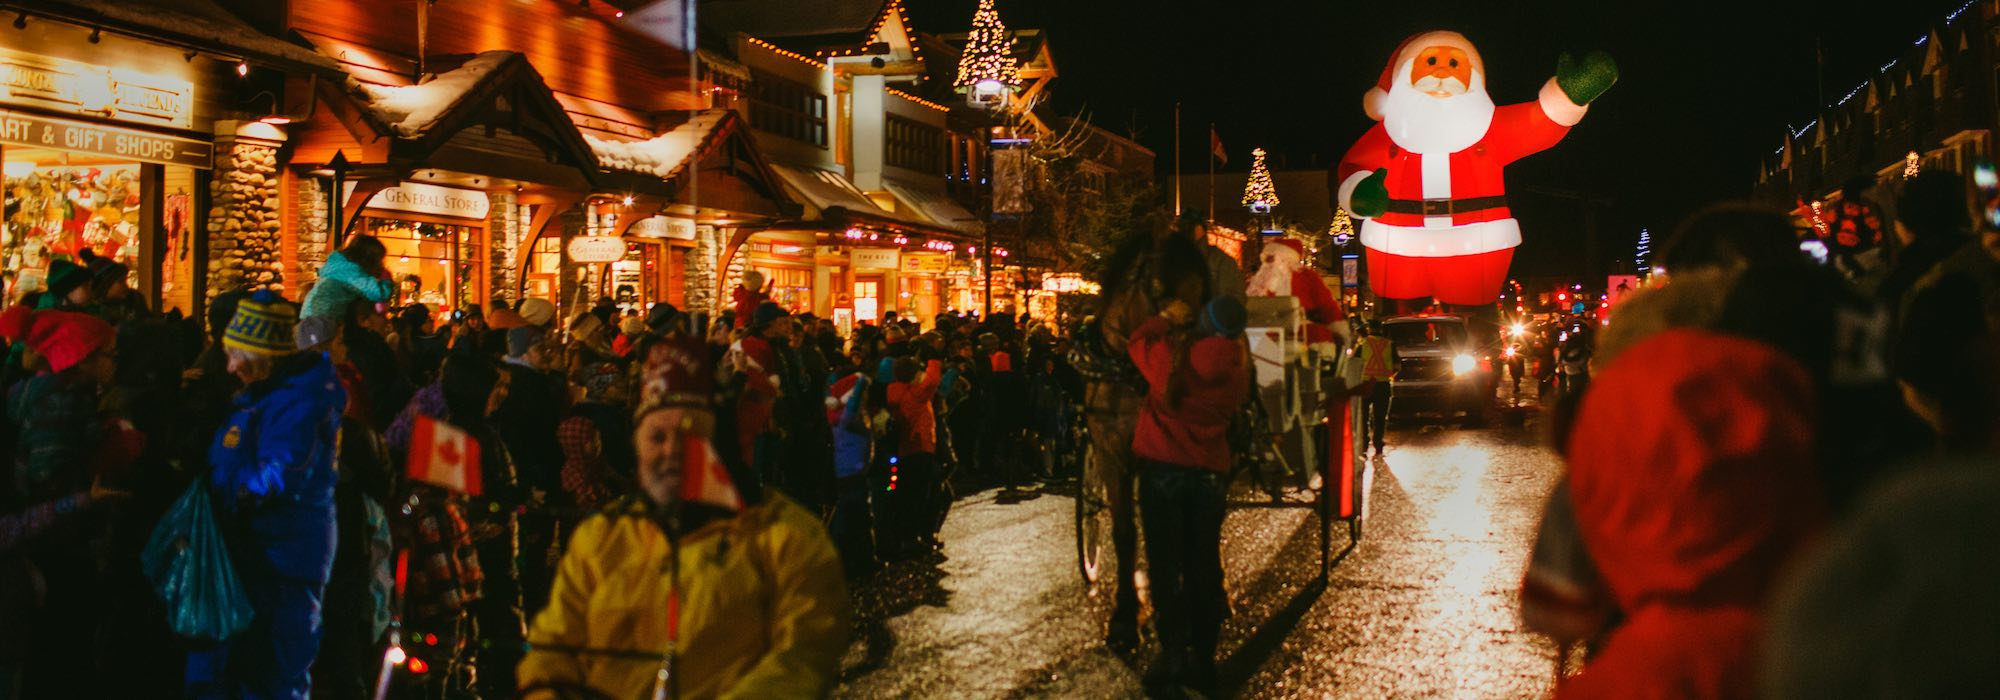 Santa Clause Parade on Banff Avenue, Banff National Park.